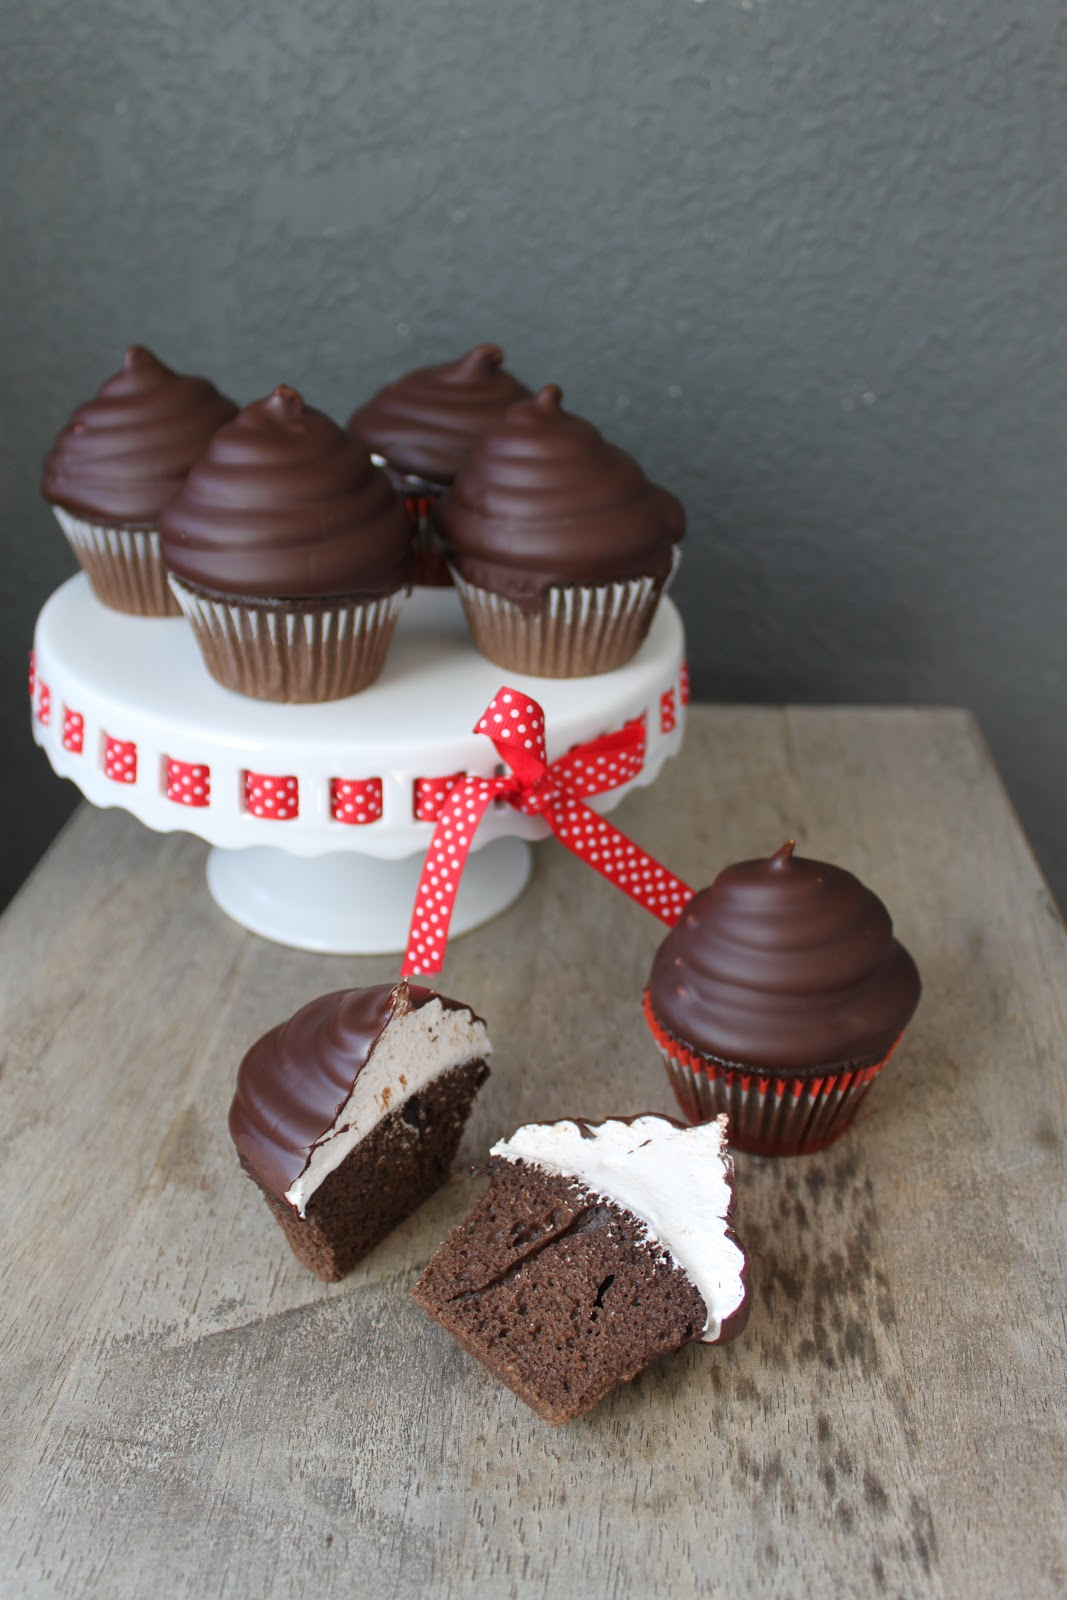 Hi-Hat Cupcakes, from the book Cupcakes! and Martha Stewart Show, May ...